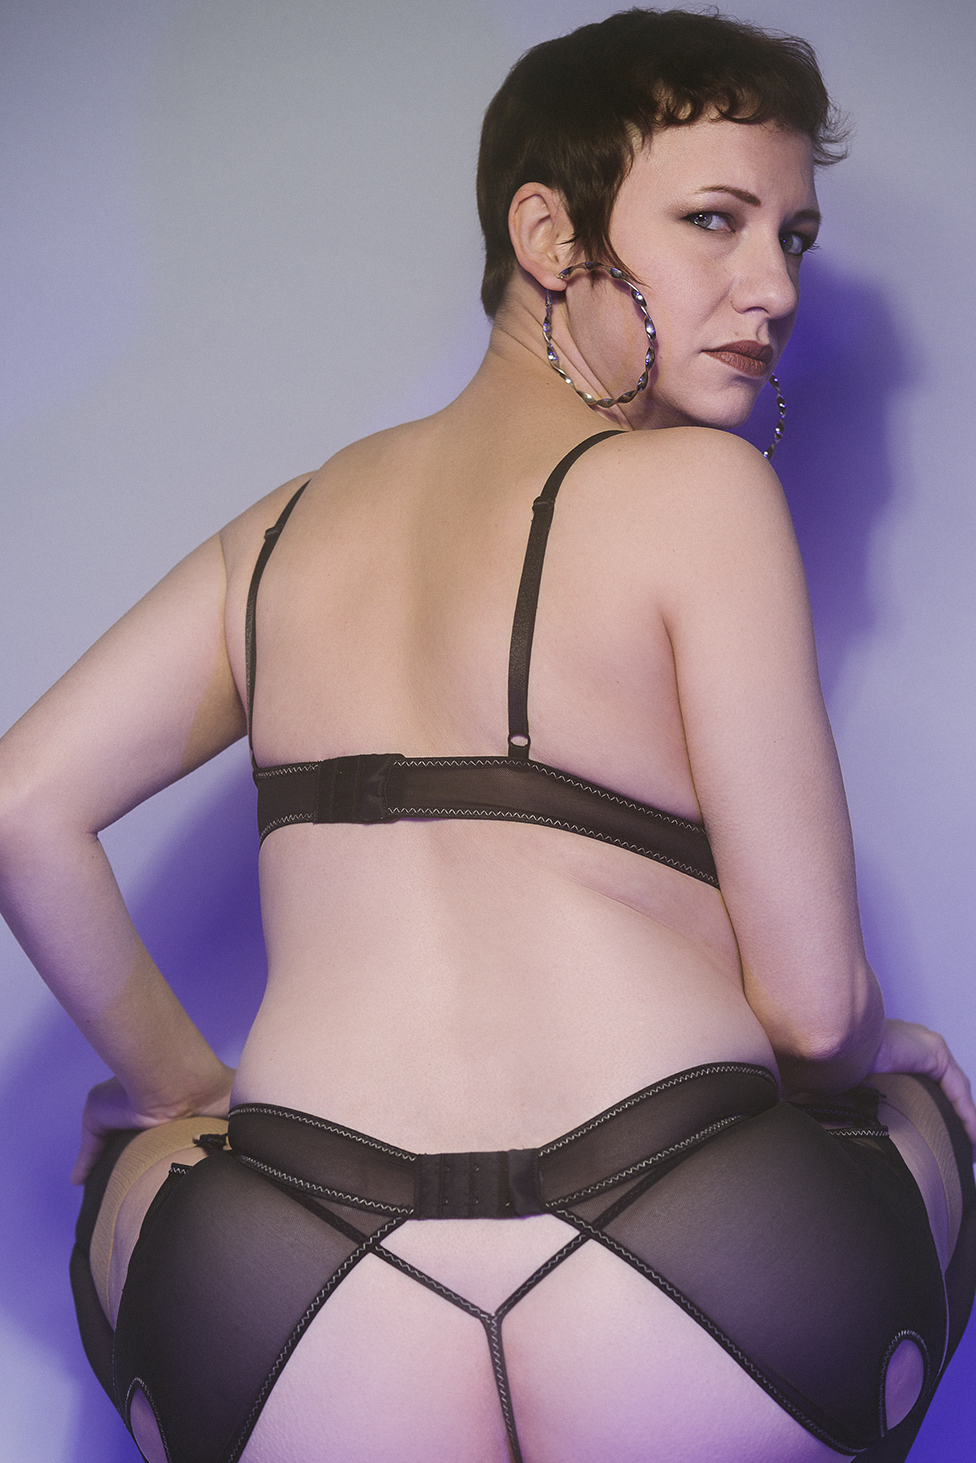 Domme Discordia Dominatrix Ass Worship Queening proDomme NYC Brooklyn